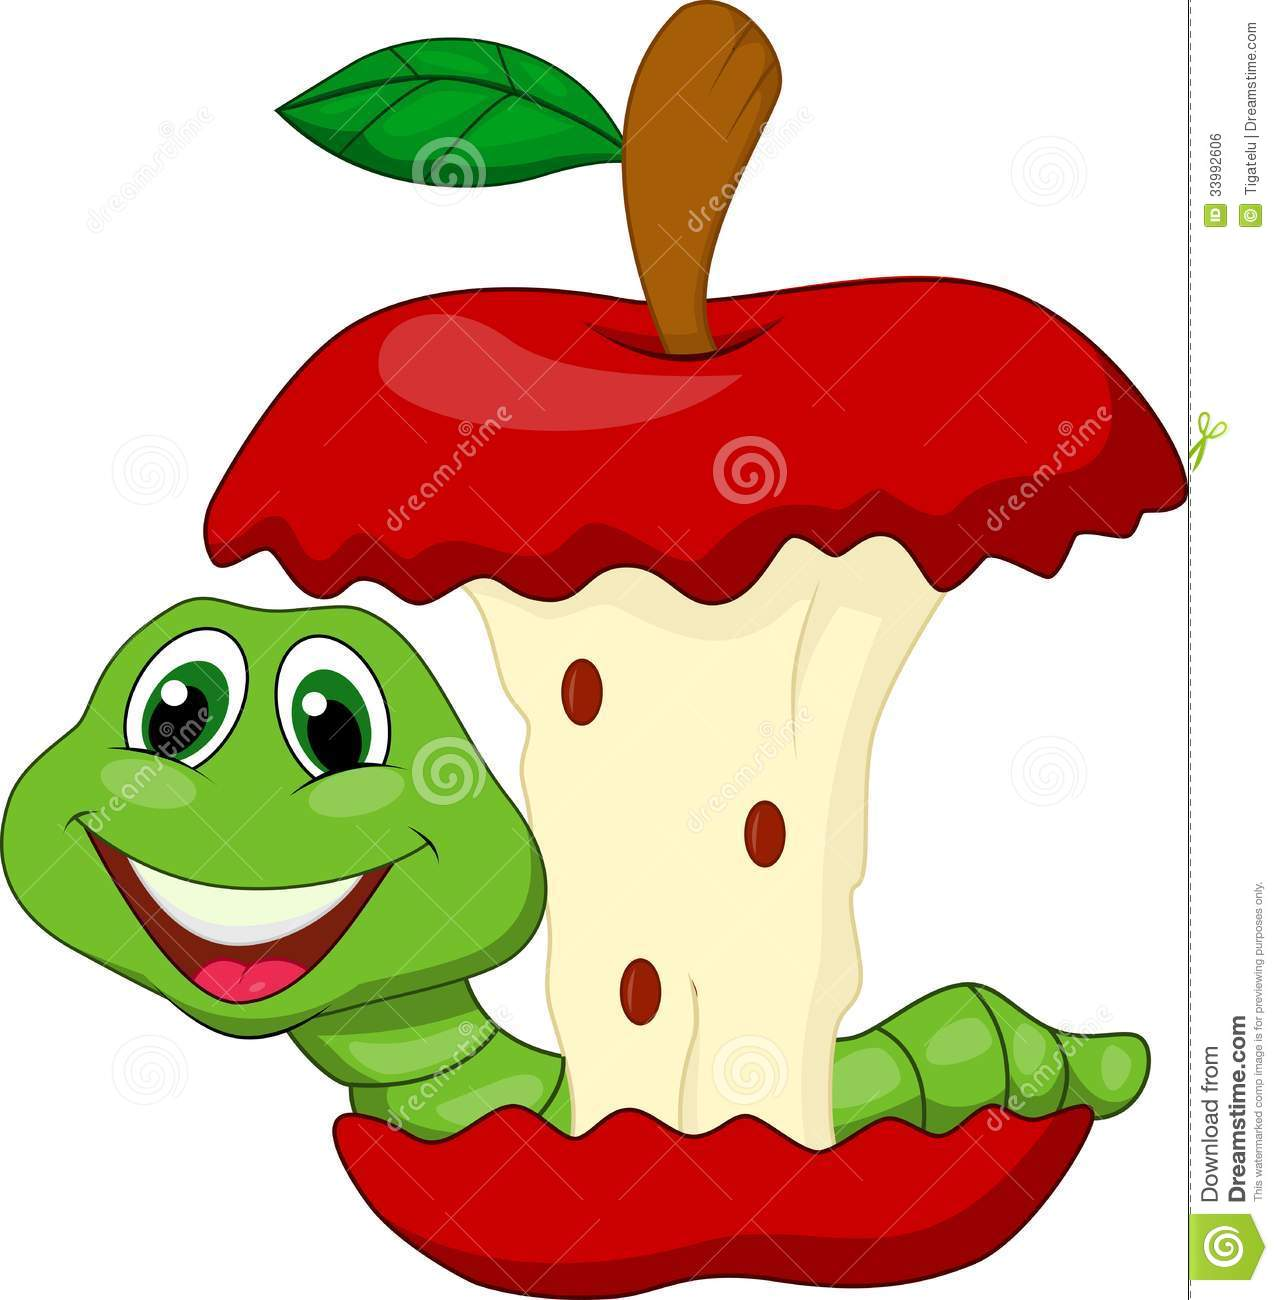 Apple eating apple clipart clip art library download Cartoon Worm Eating Apple - Clipart Kid clip art library download